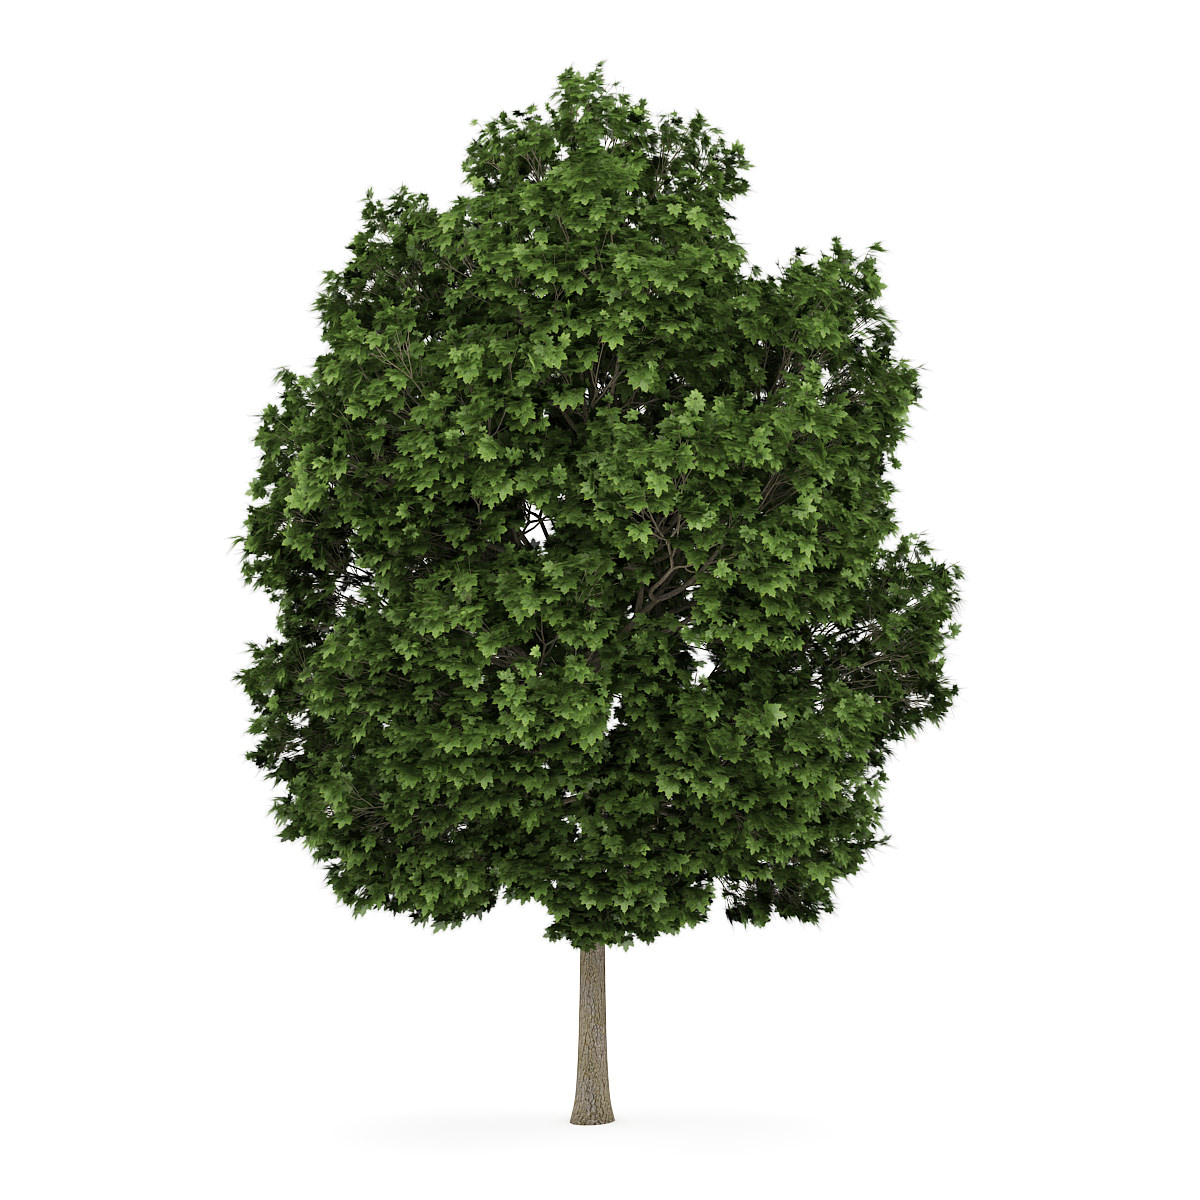 Common Maple 2 Acer Campestre 3d Model C4d Cgtrader Com